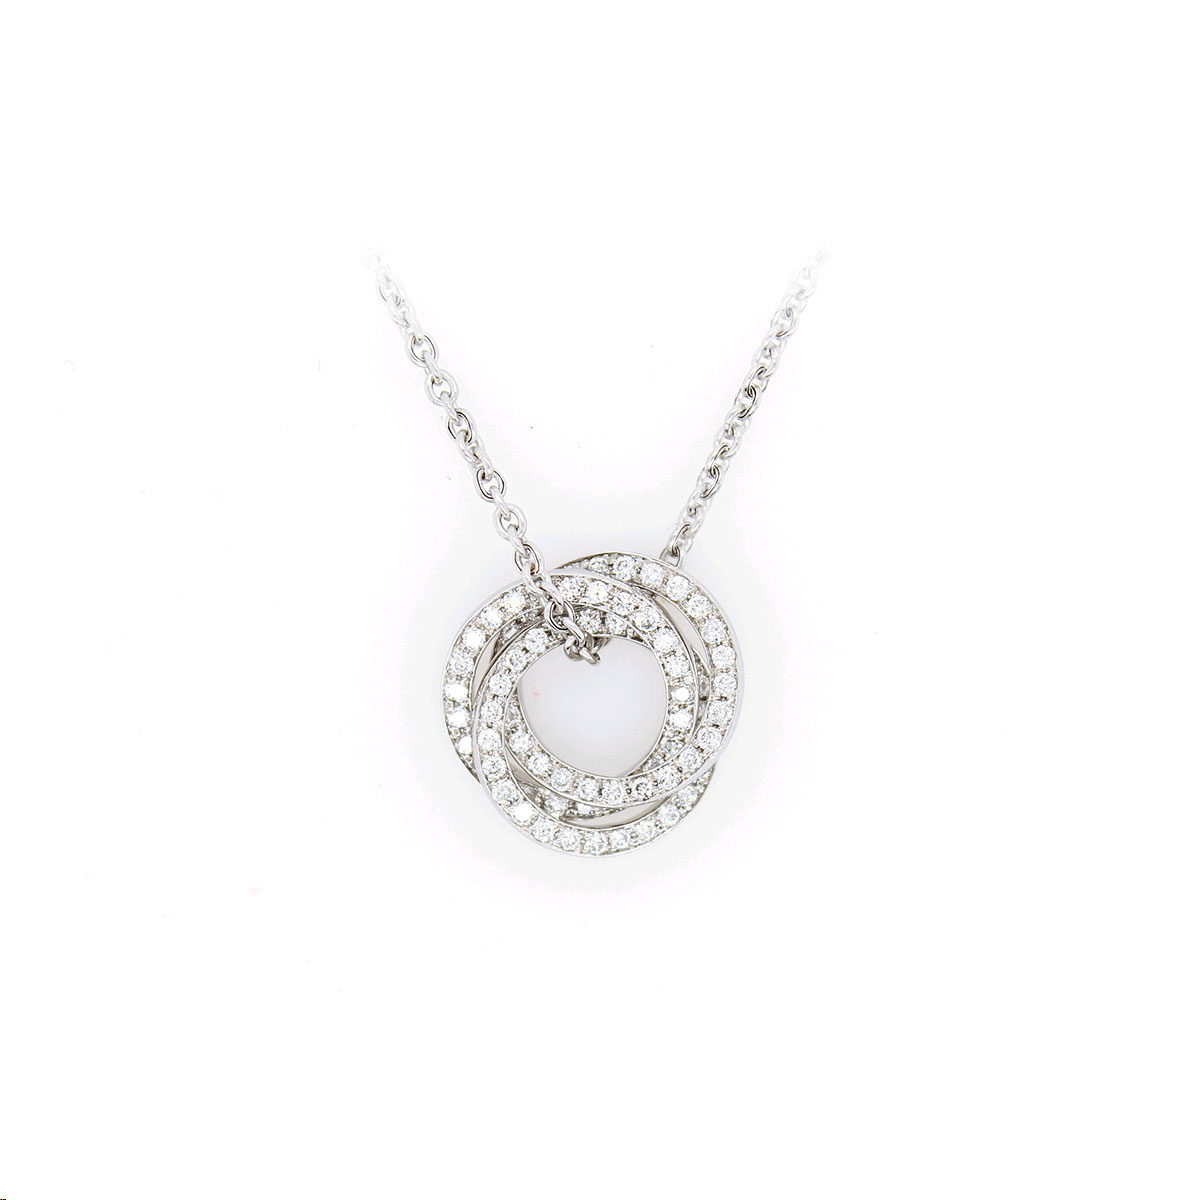 14 Karat White Gold Interlocking Circles Diamond Pendant Necklace